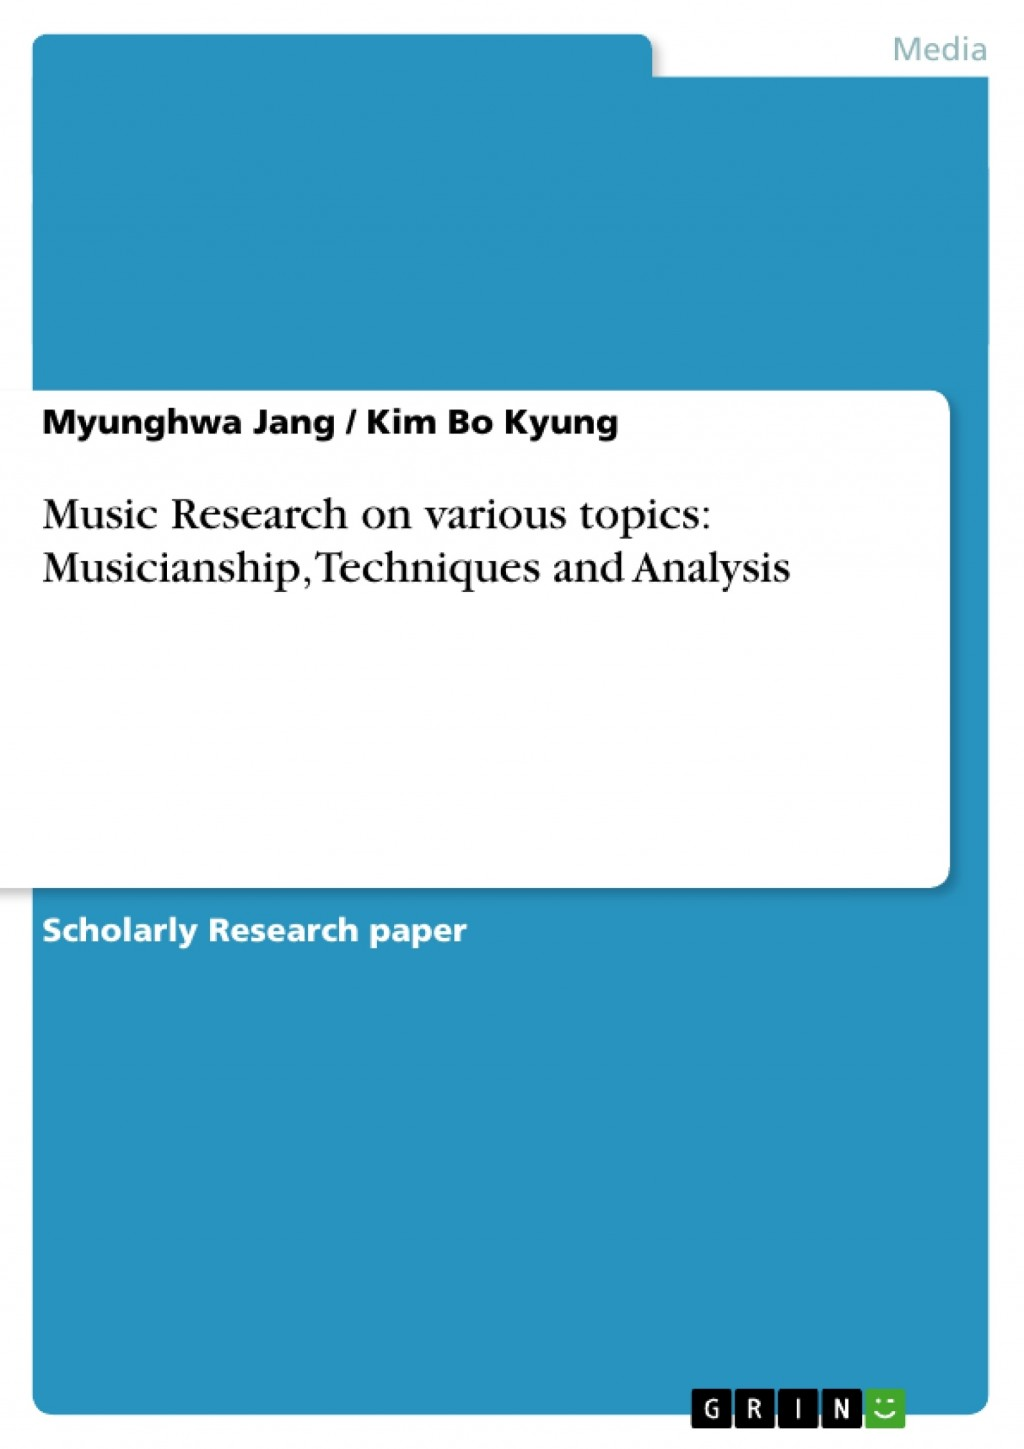 014 Research Paper Topics Music 208216 0 Imposing Education Classical Industry Large